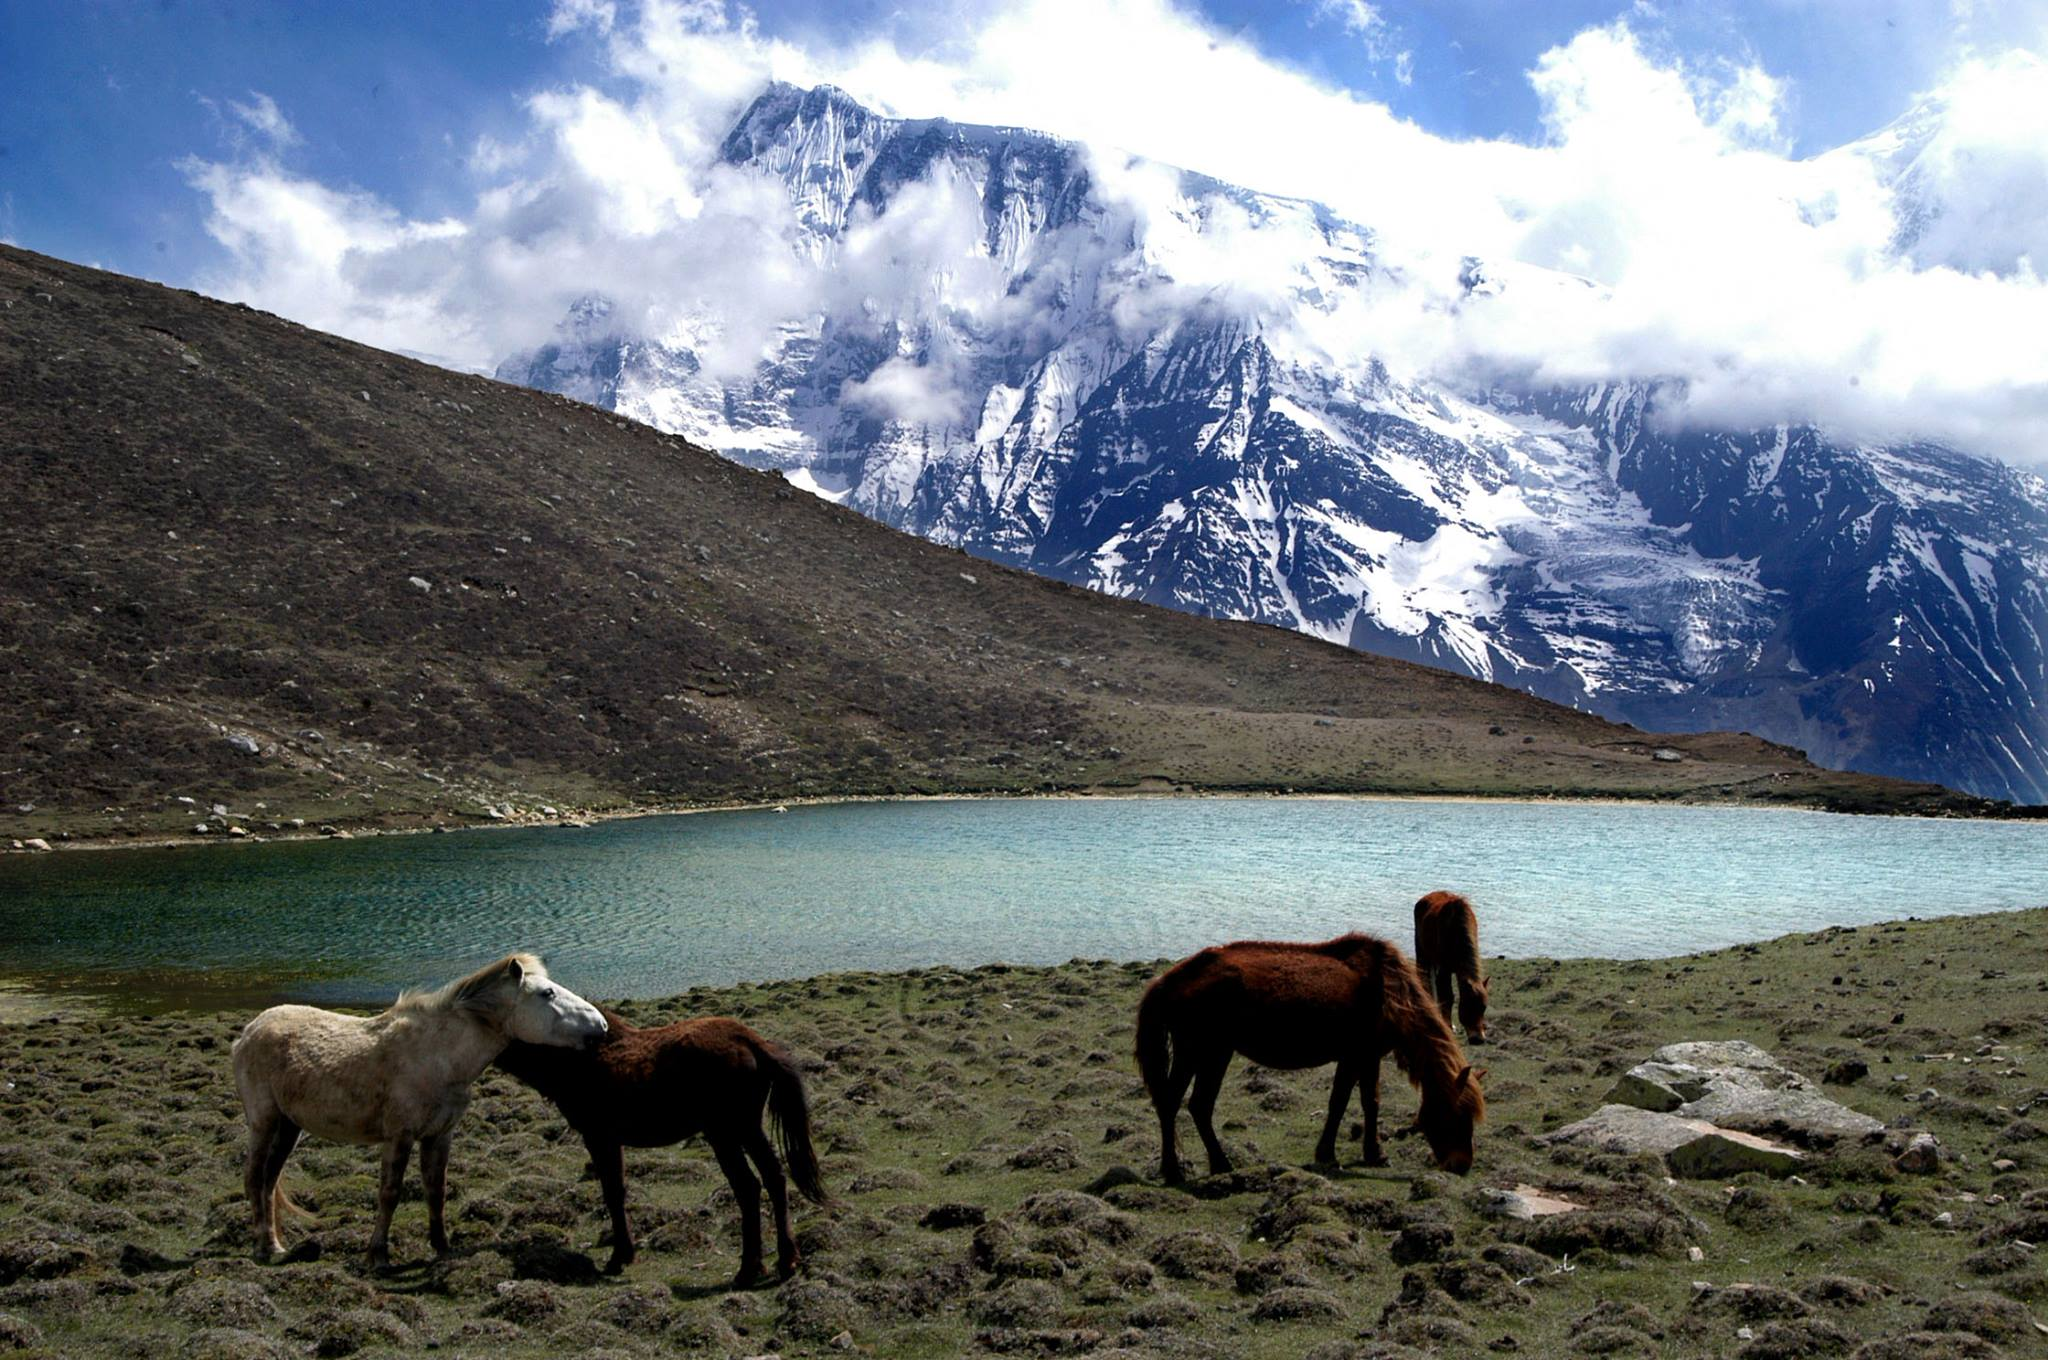 Nepal mountains with horses in foreground